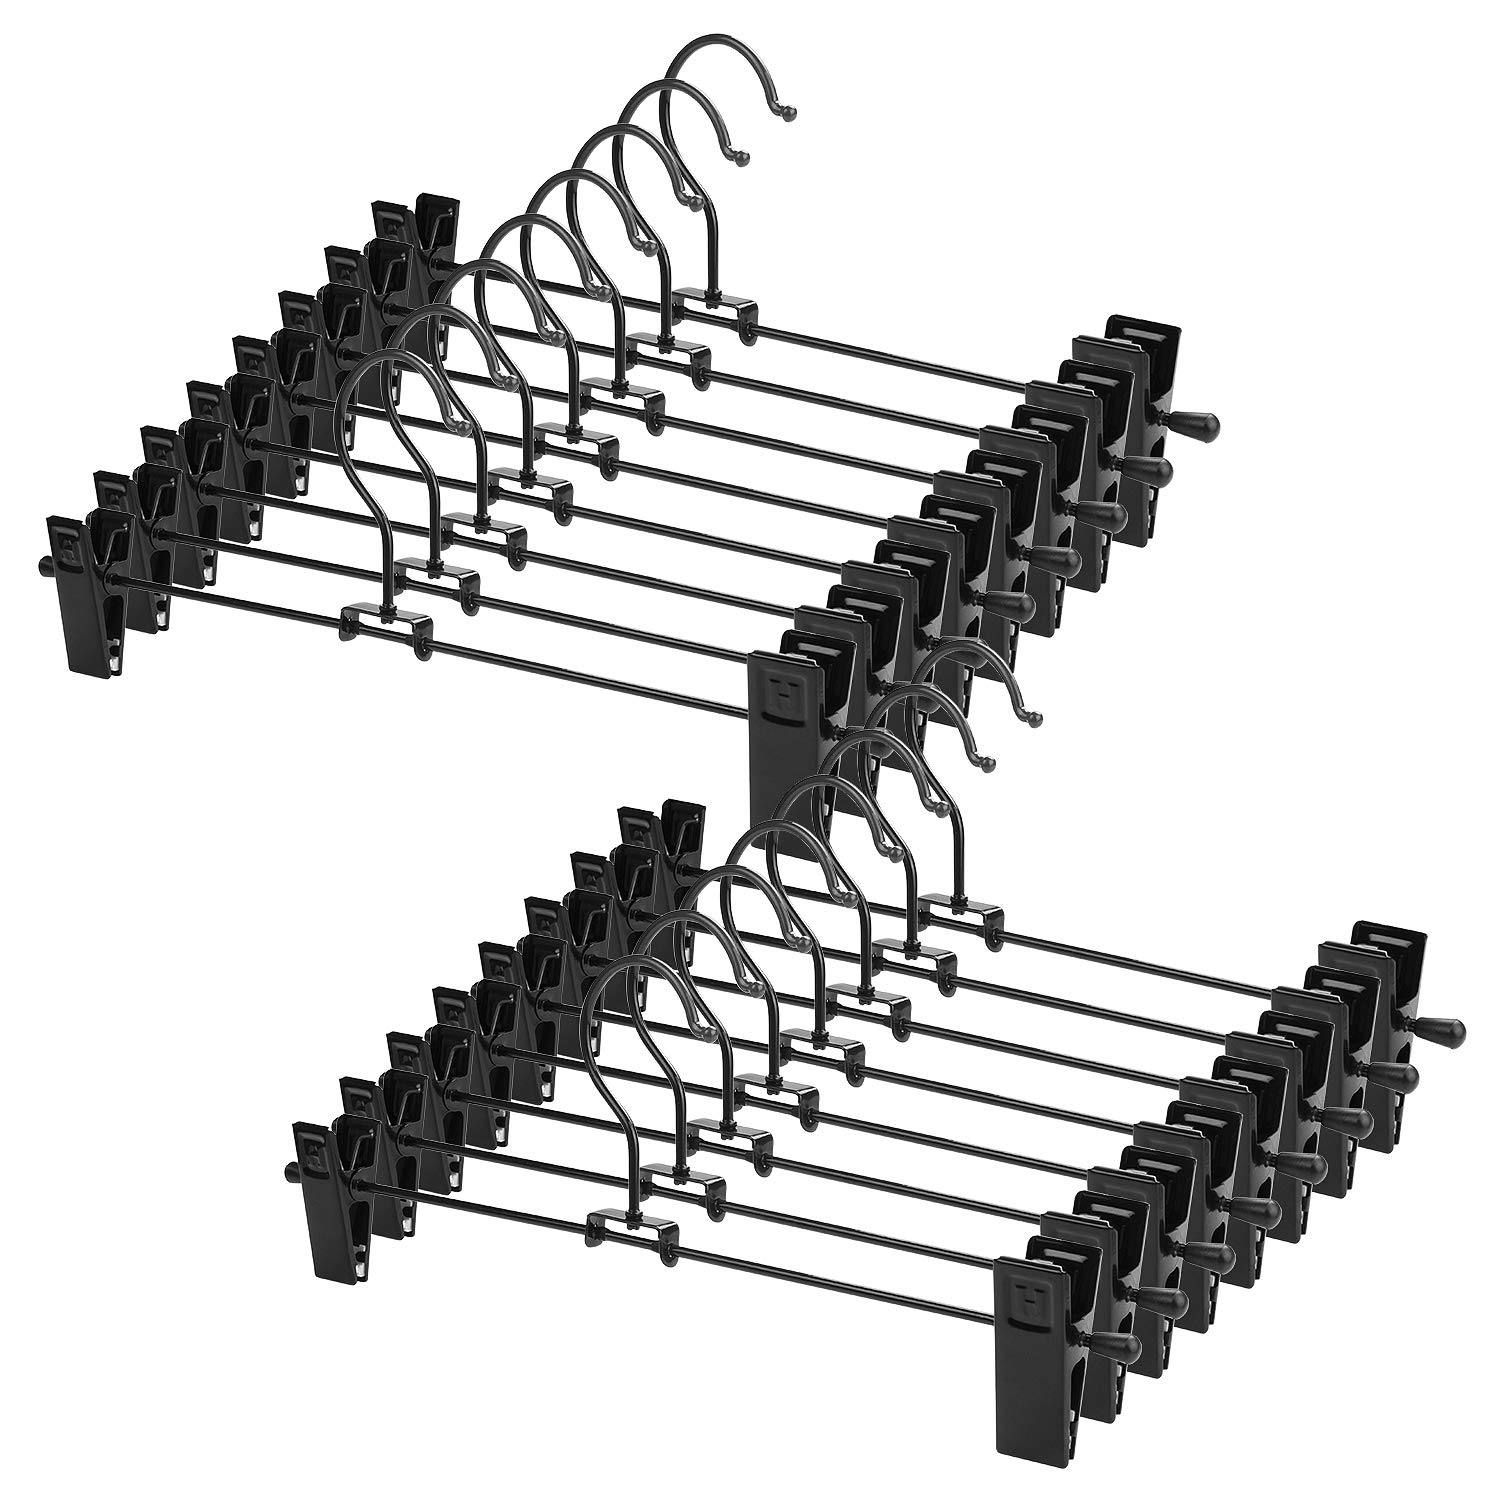 A+Selected Pack of 25 Clothes Clip Hangers Metal Trouser Skirt Hangers with Clips for Pants Coat Jeans Towels Shorts Tops - 30cm (12) Black